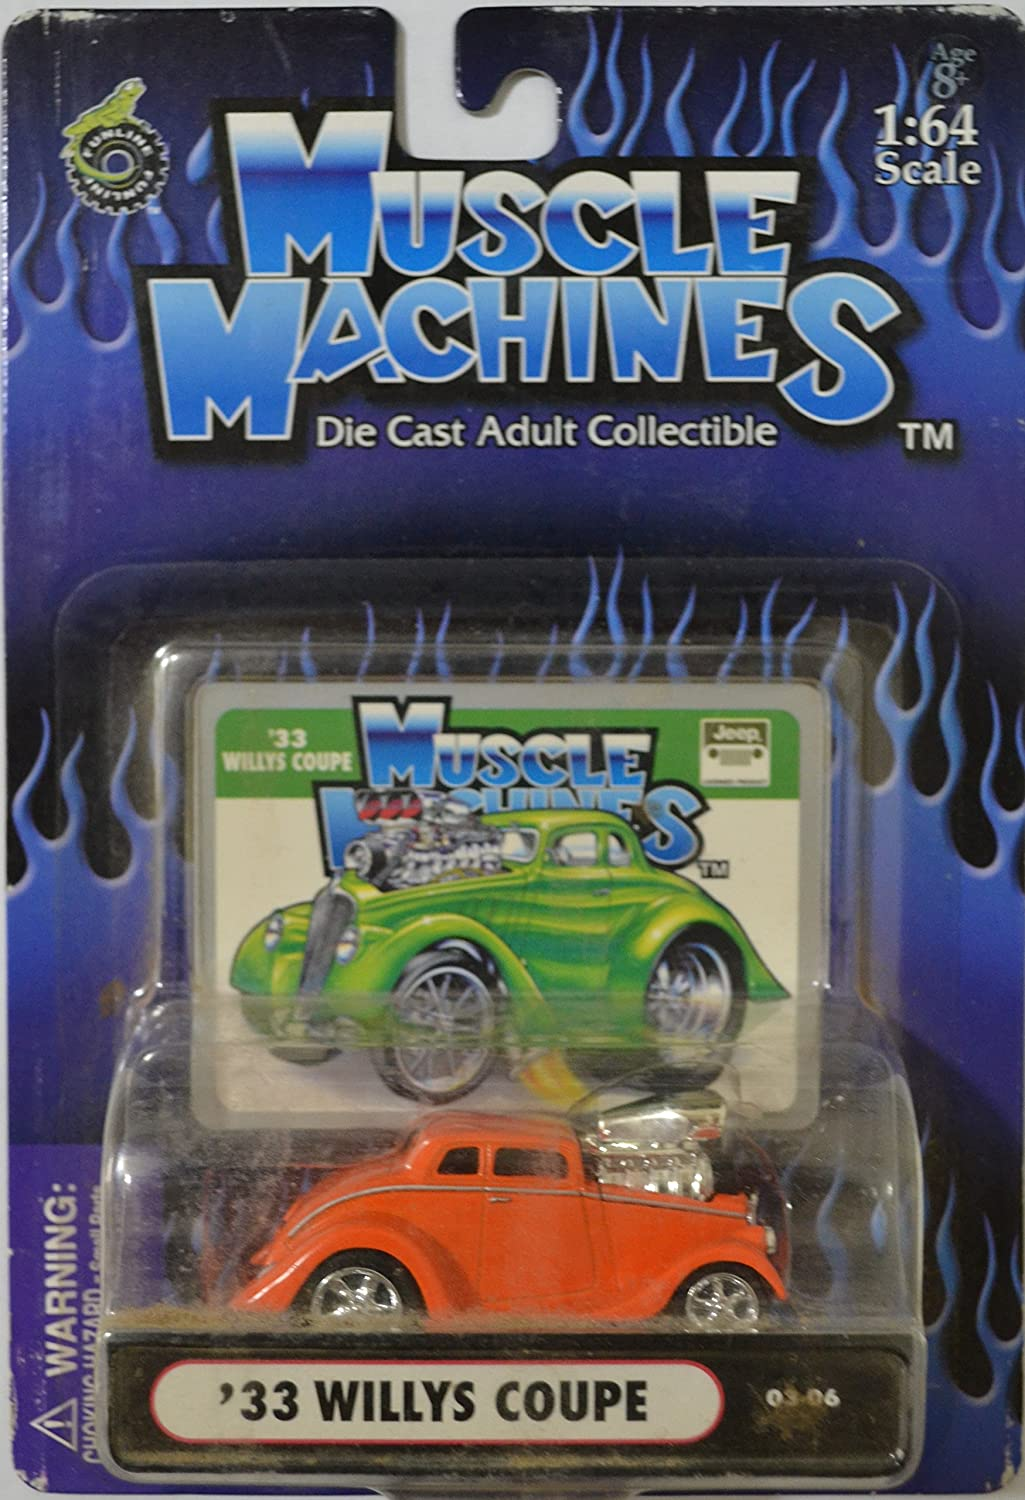 Orange 33 Willys Coupe American Muscle Machines Series 1:64 Scale Collectible Die Cast Model Car CAT